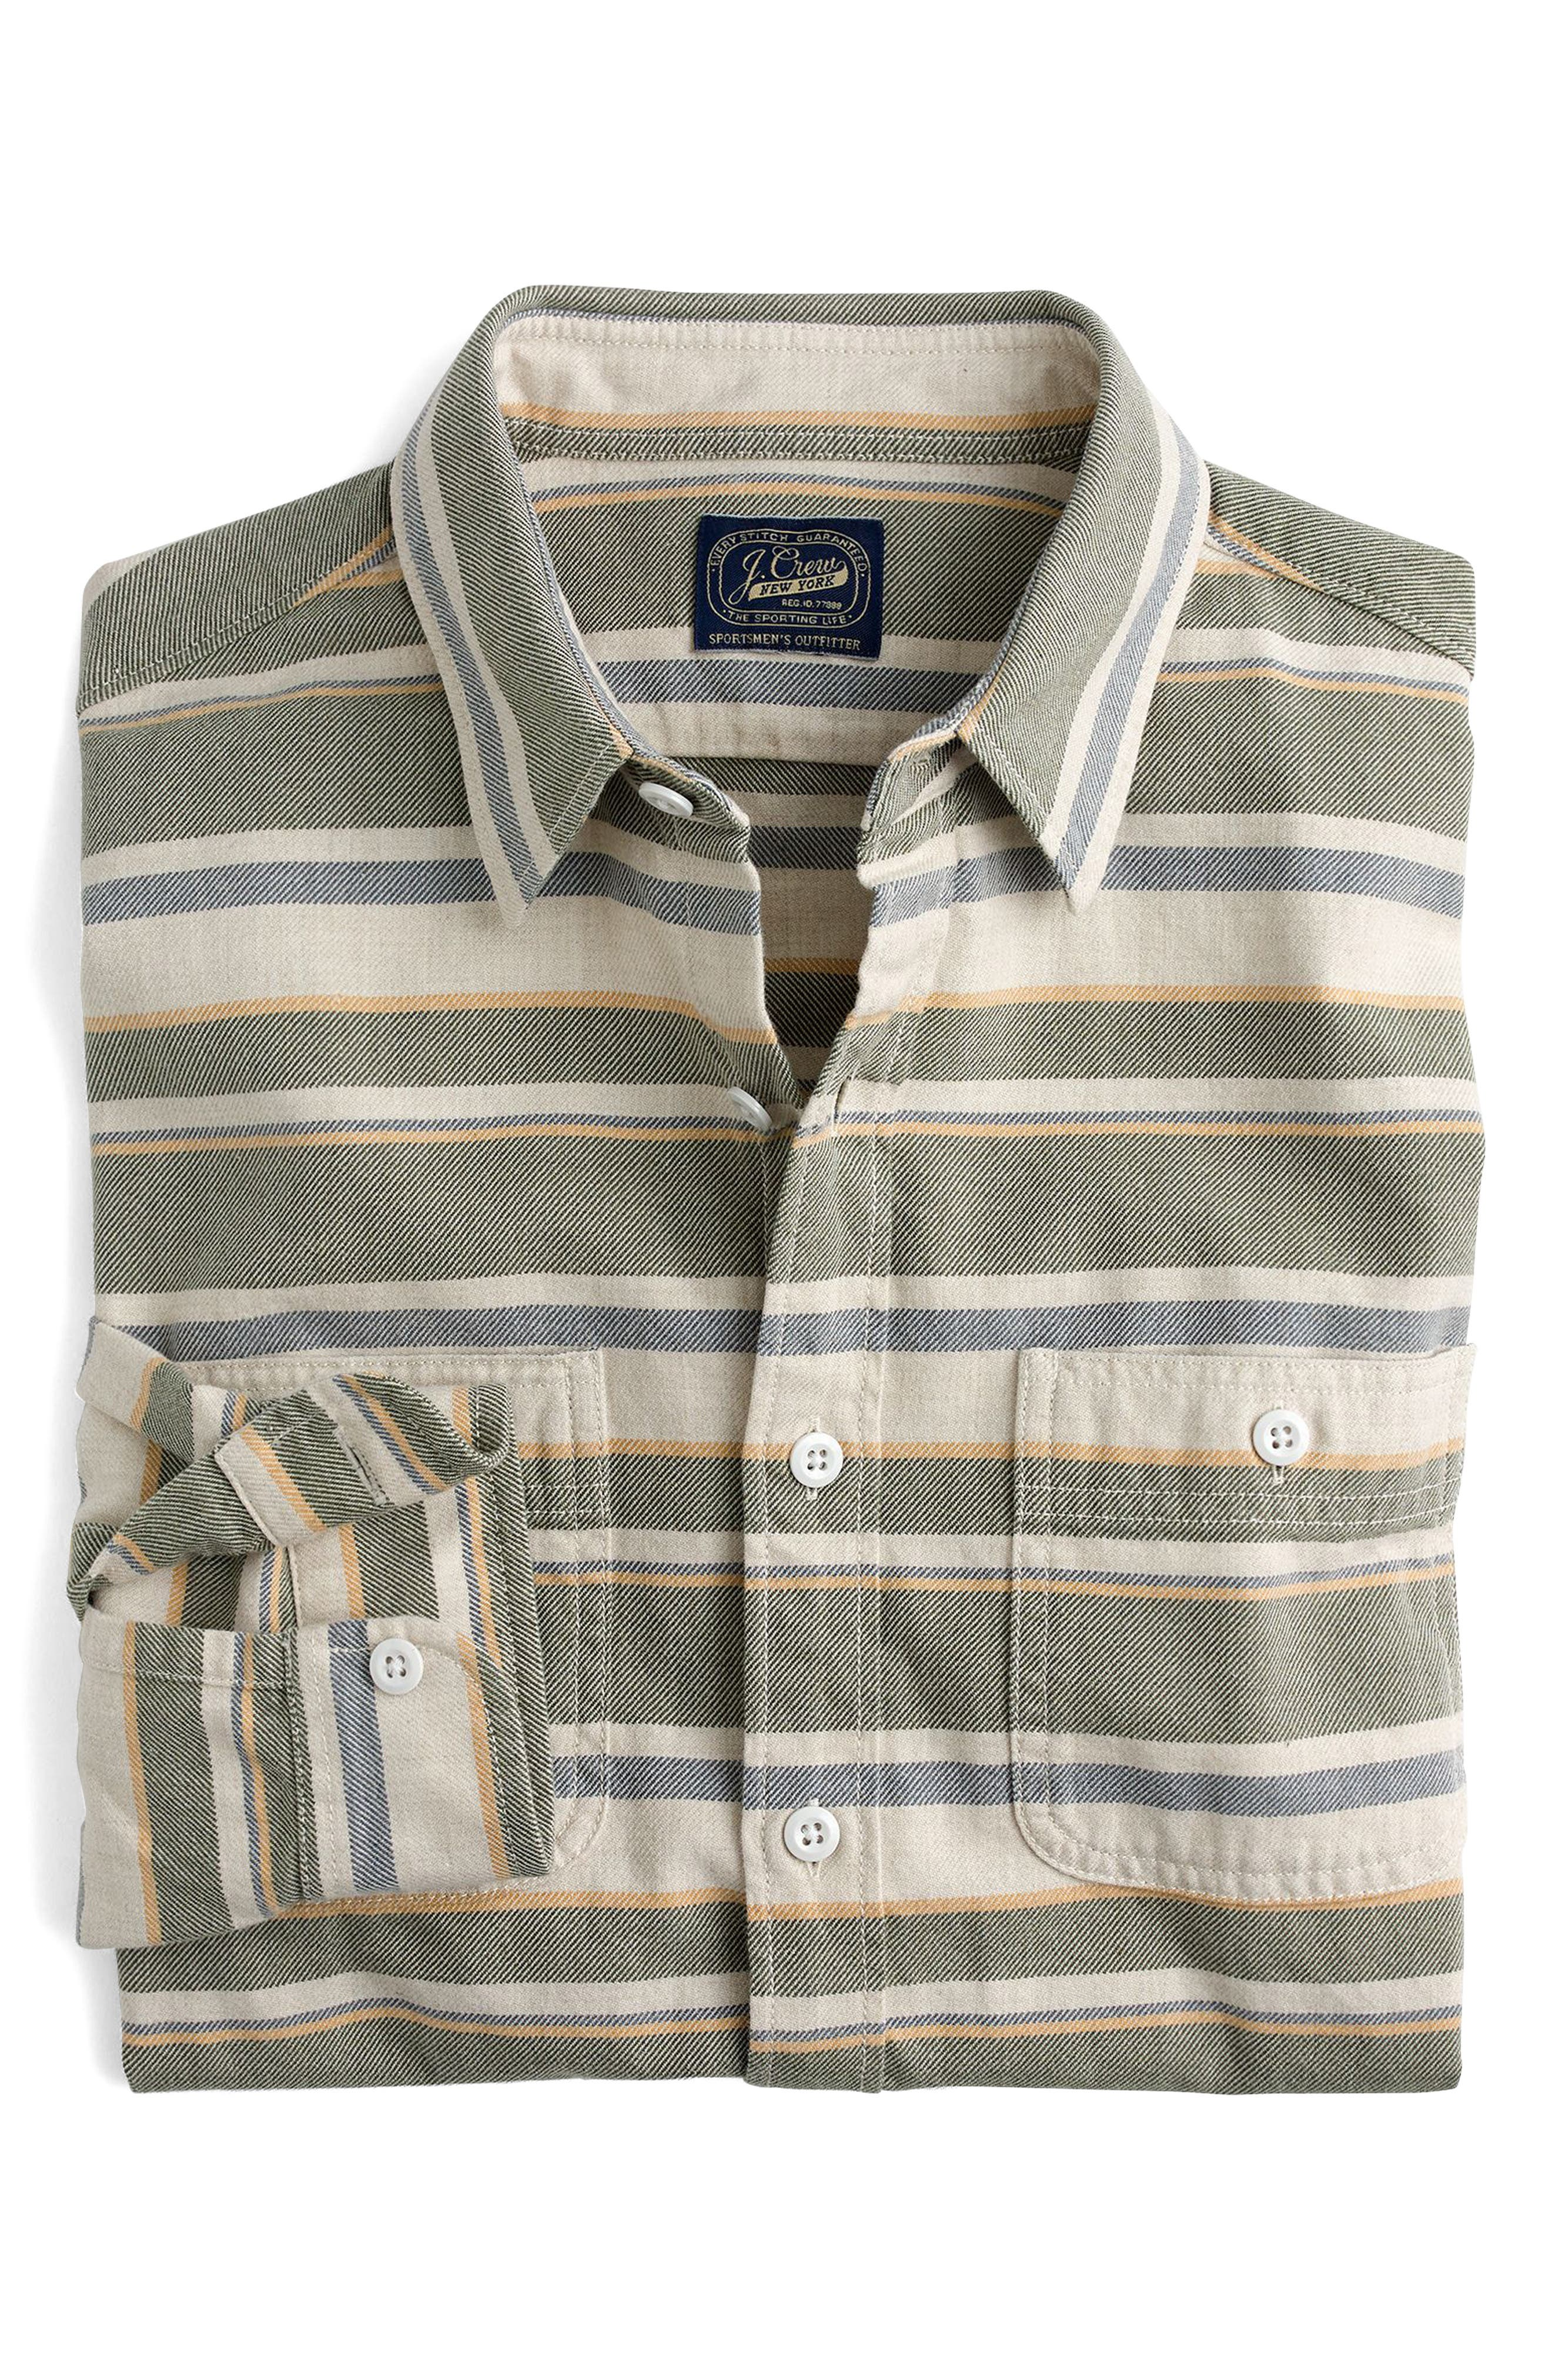 Alternate Image 3  - J.Crew Classic Fit Deck Stripe Work Shirt